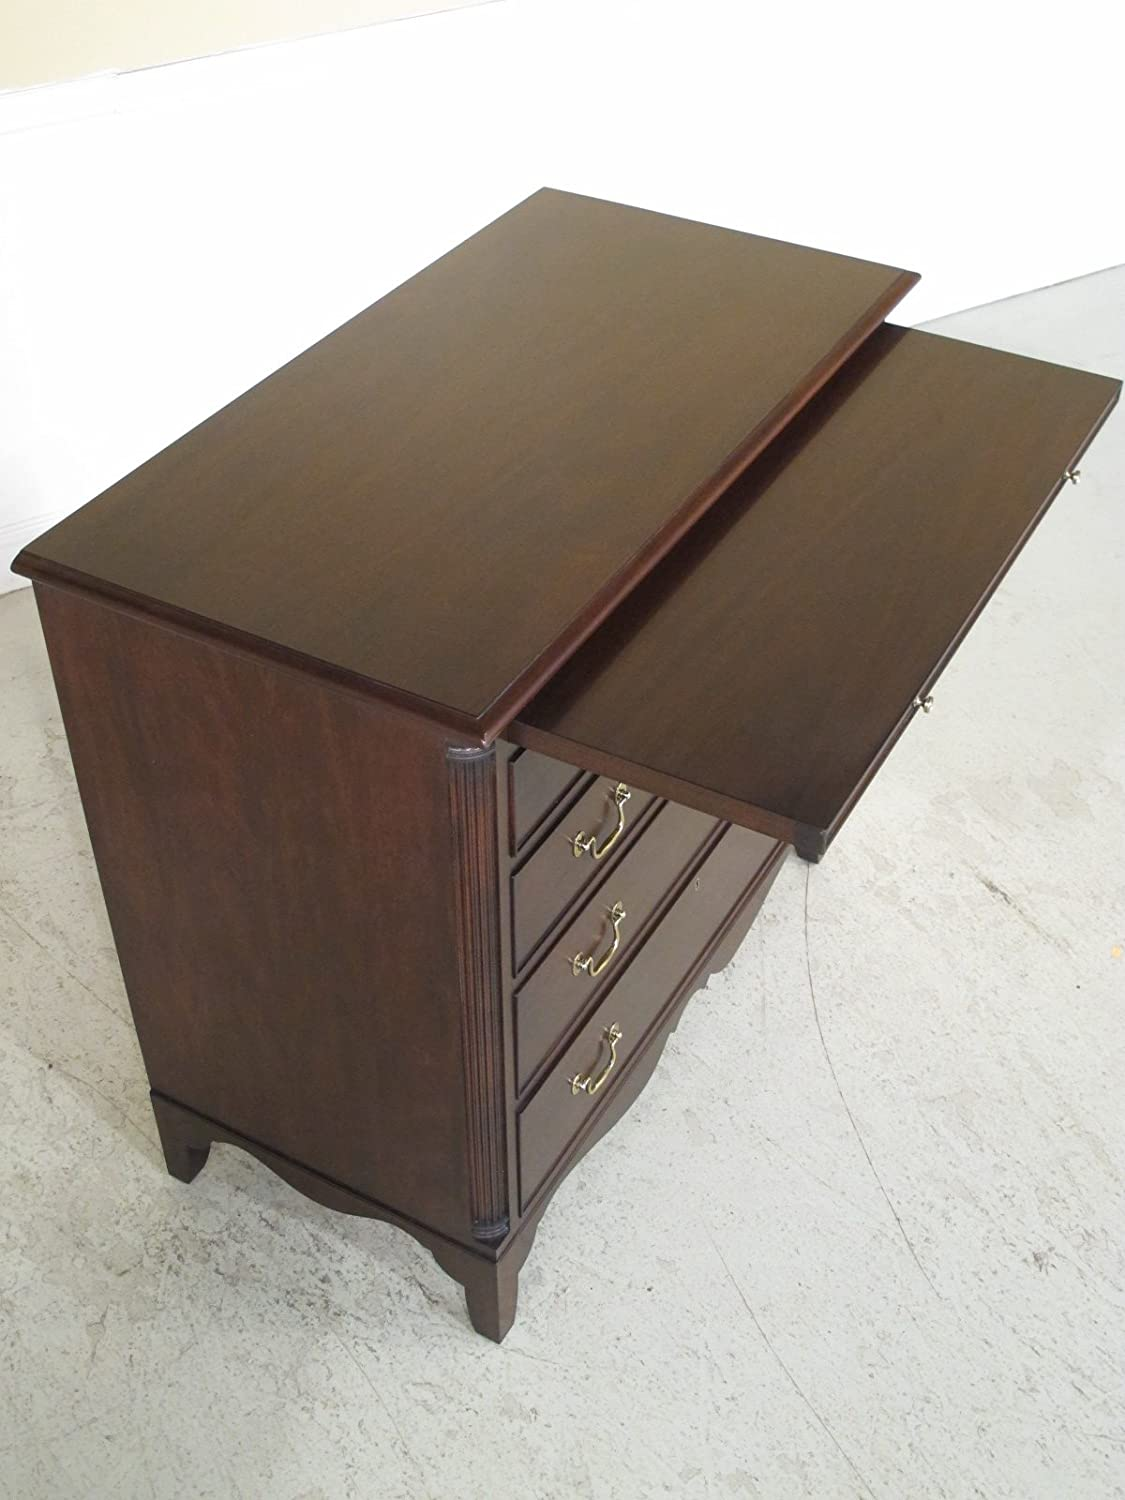 Henkel Harris Dining Table Amazoncom Henkel Harris Model 2415 Mahogany Mary Henkel Chest